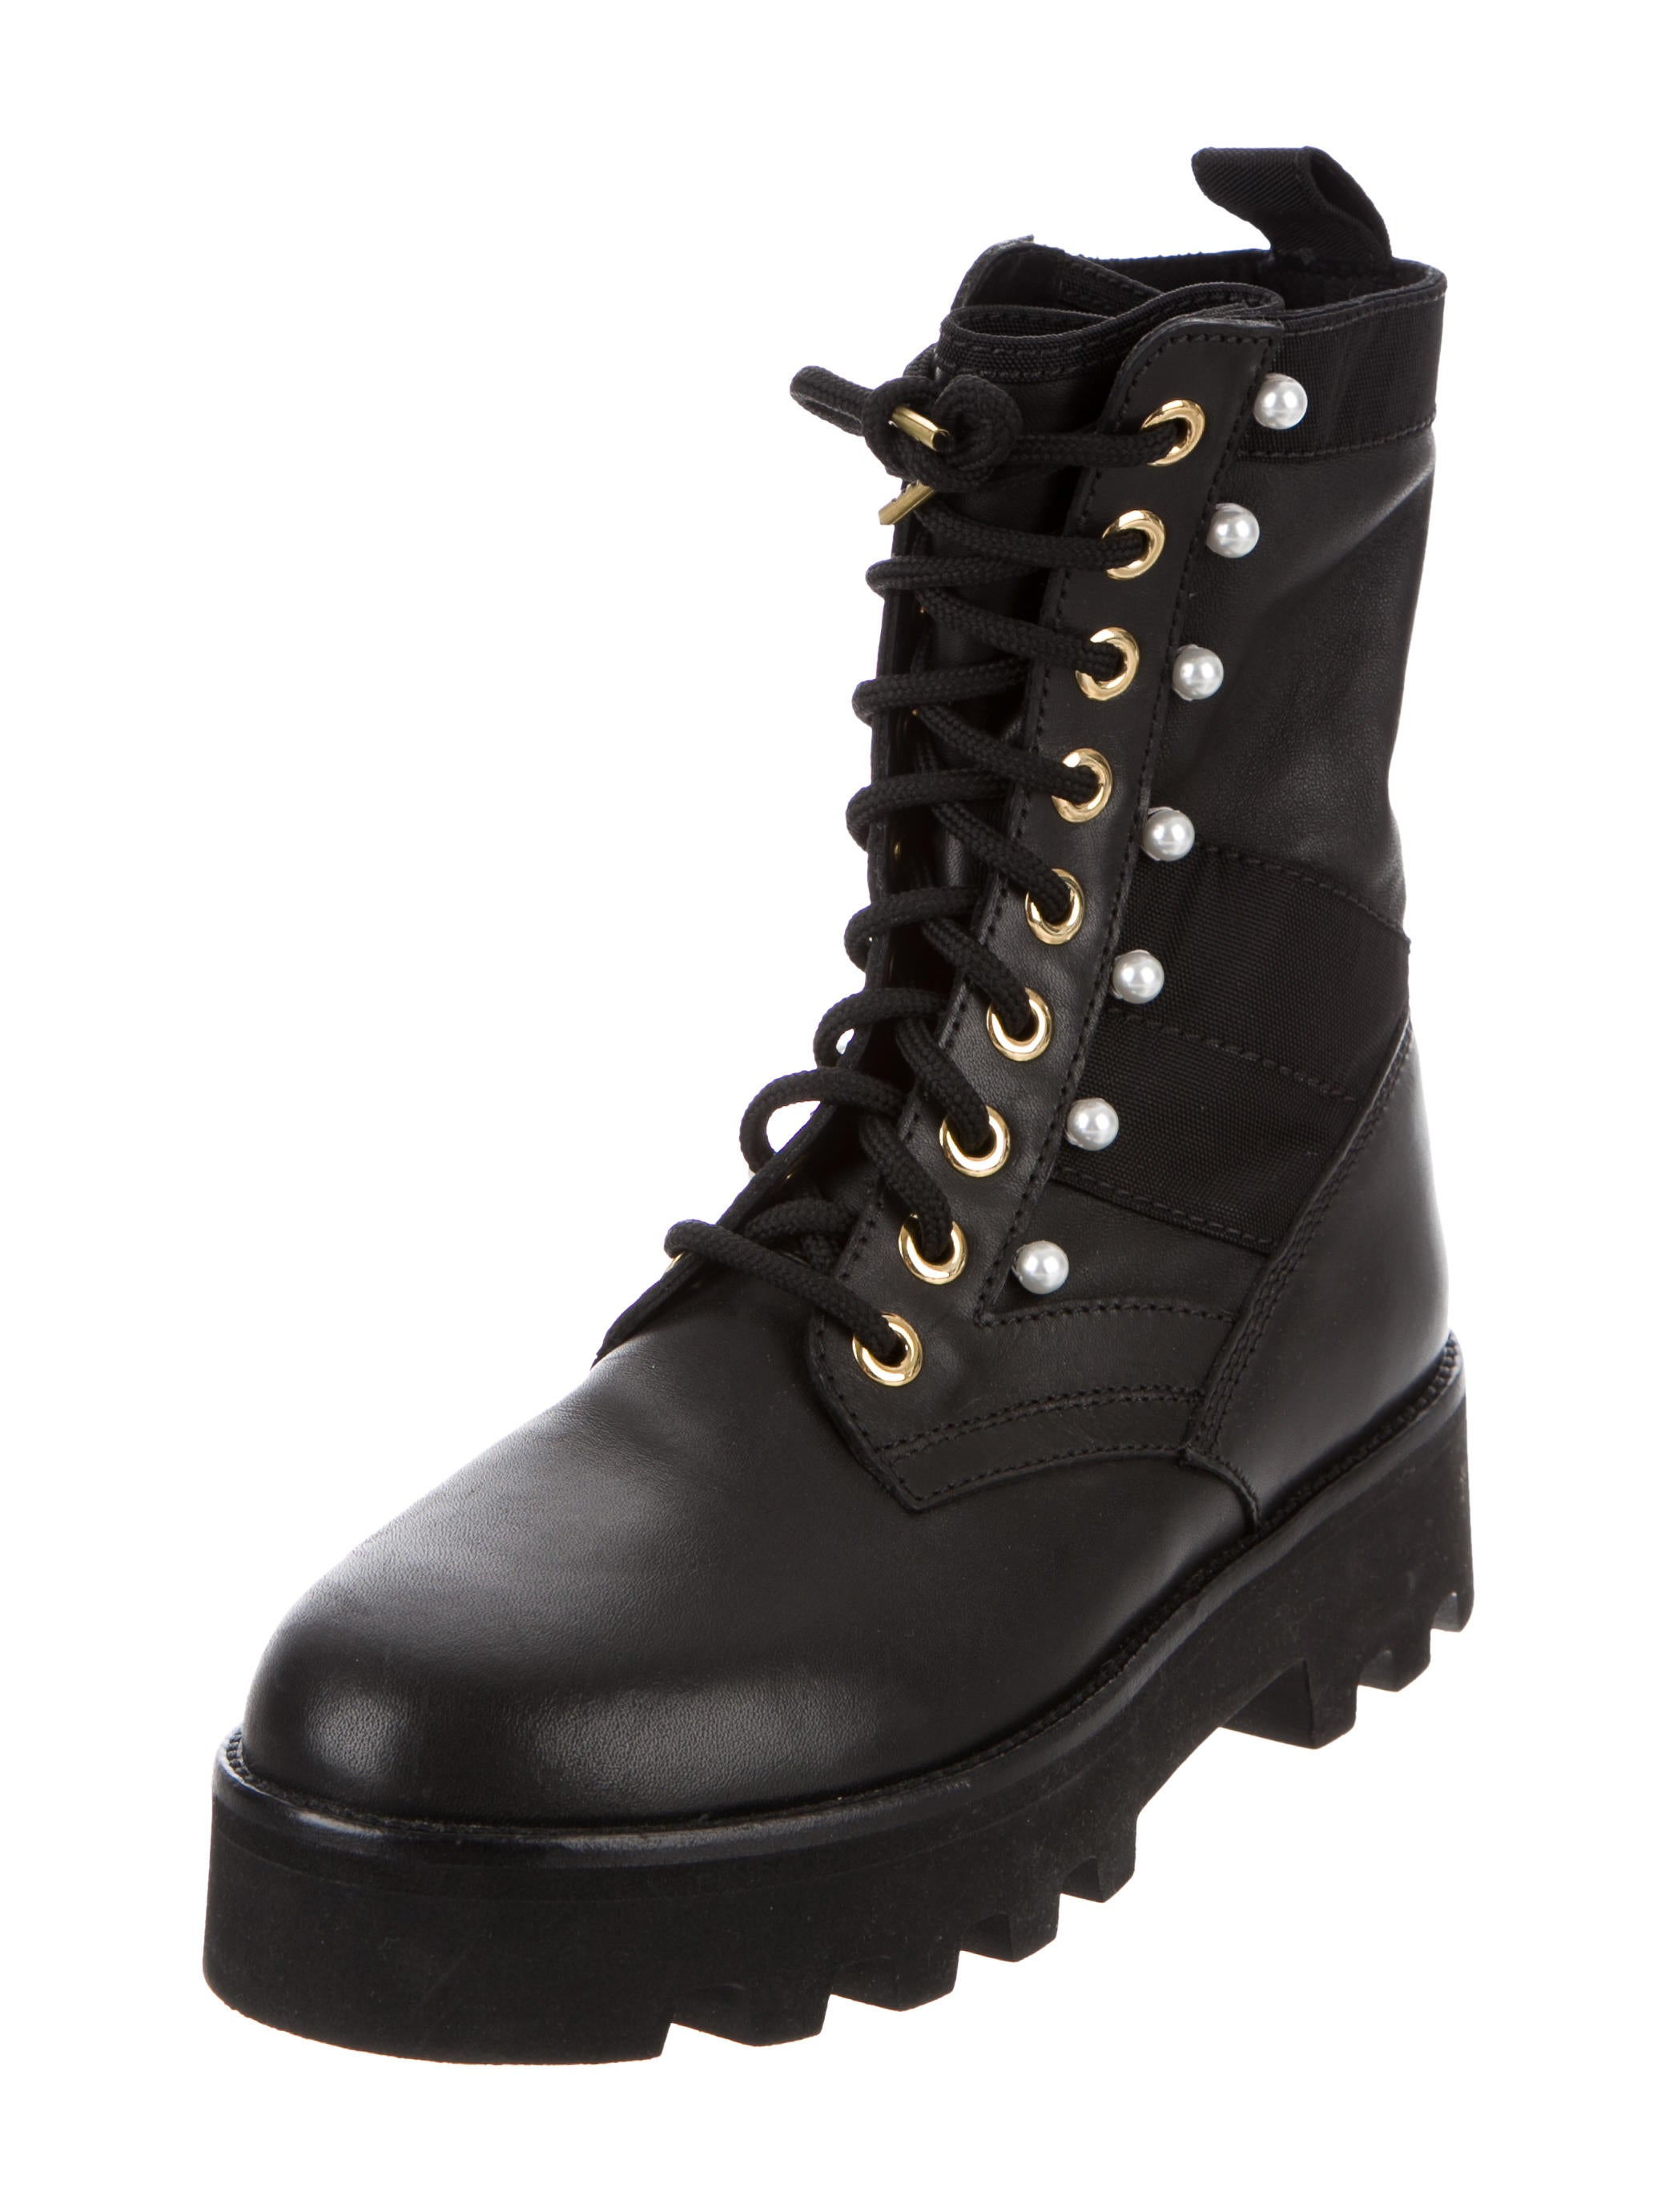 Altuzarra Cosmo Mid-Calf Boots cheap 2014 newest pre order for sale sale buy EW0QcD3Cw